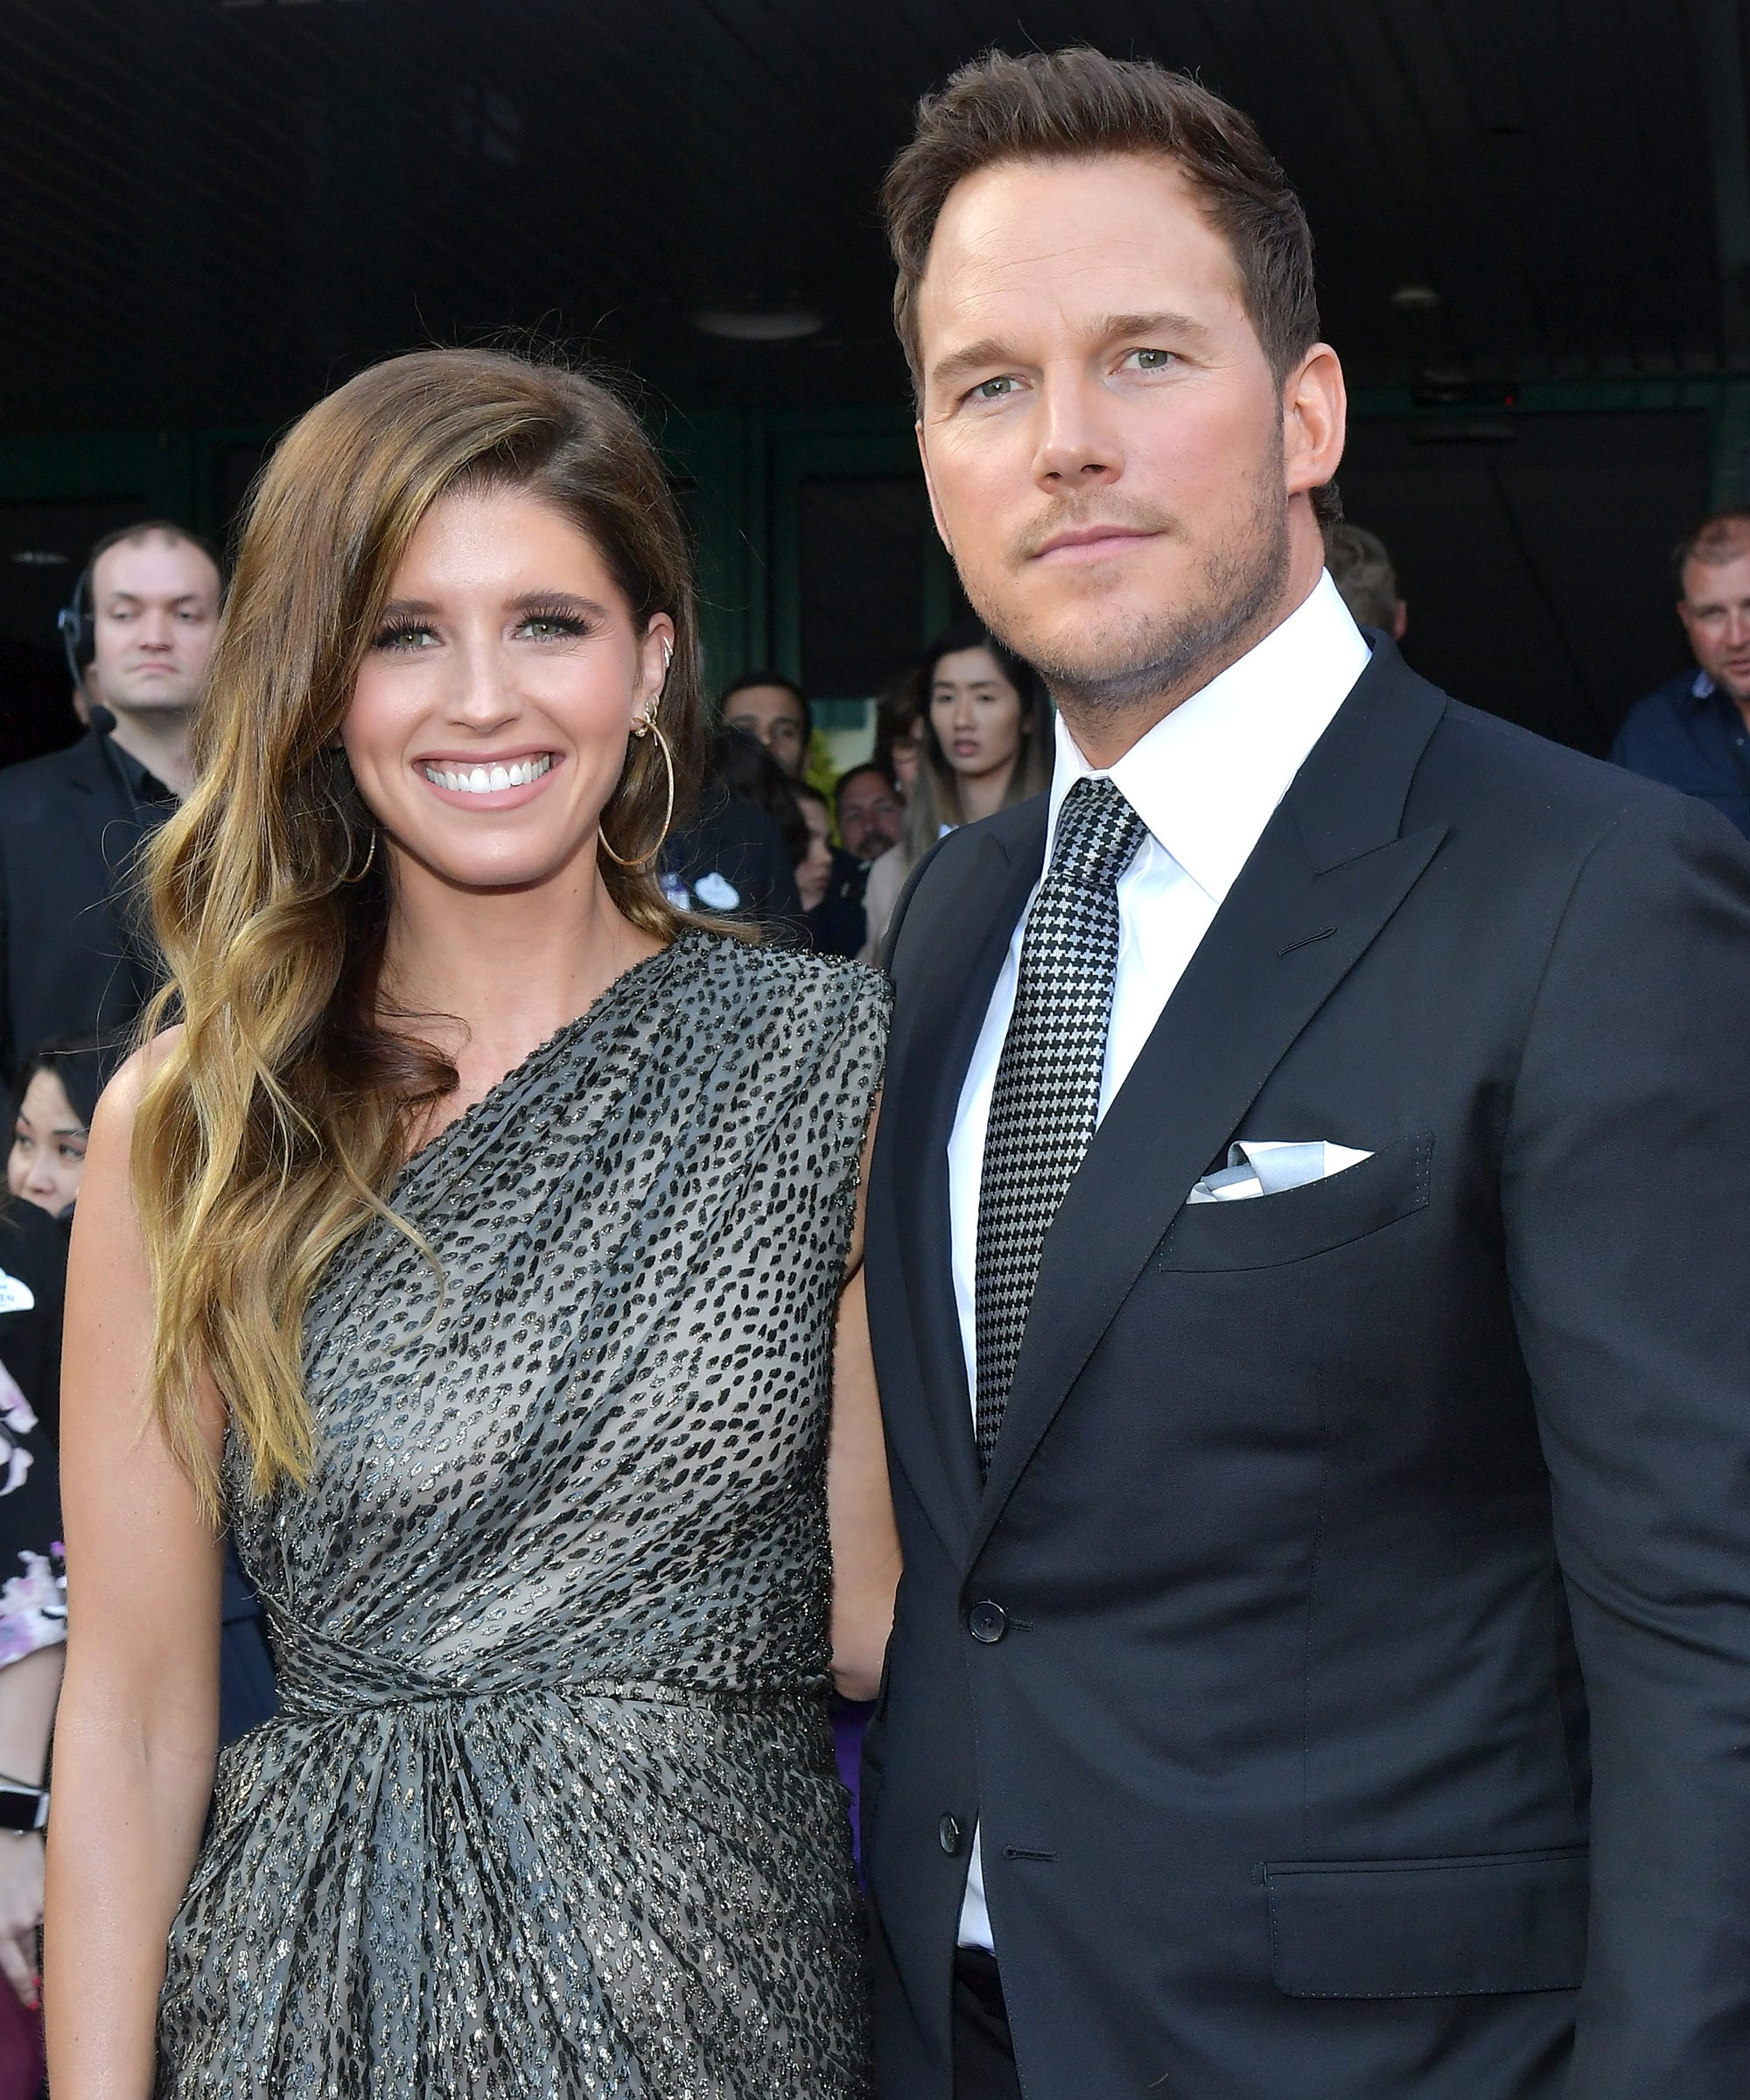 Chris Pratt & Katherine Schwarzenegger Made Their Red Carpet Debut, But Another Duo Stole The Spotlight